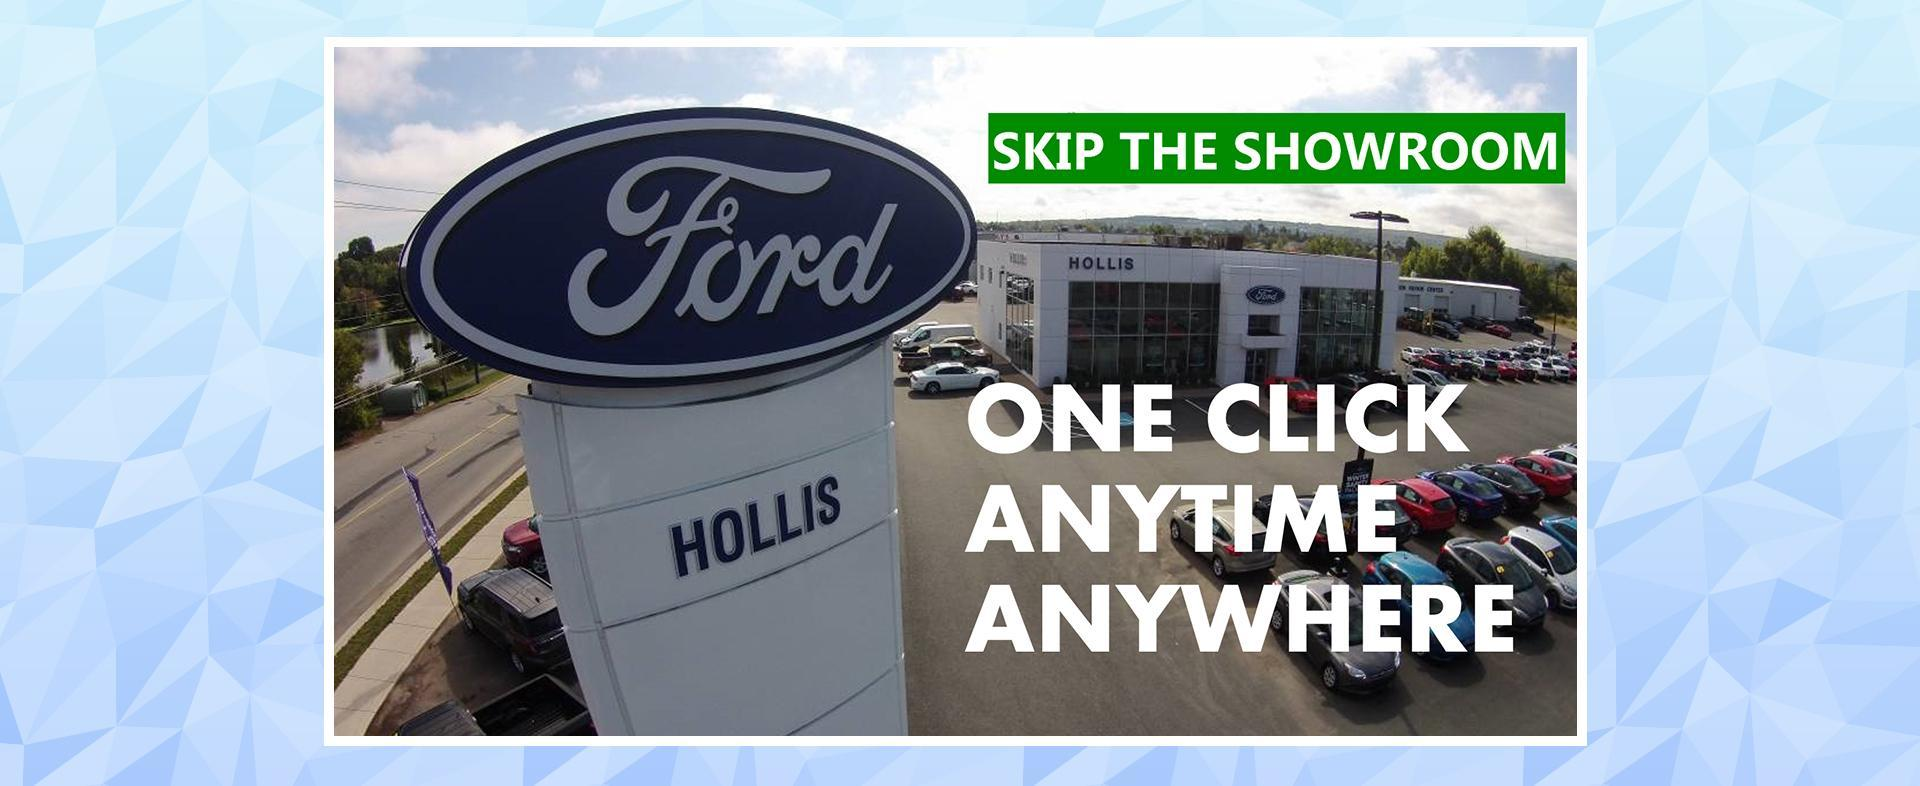 Skip the showroom